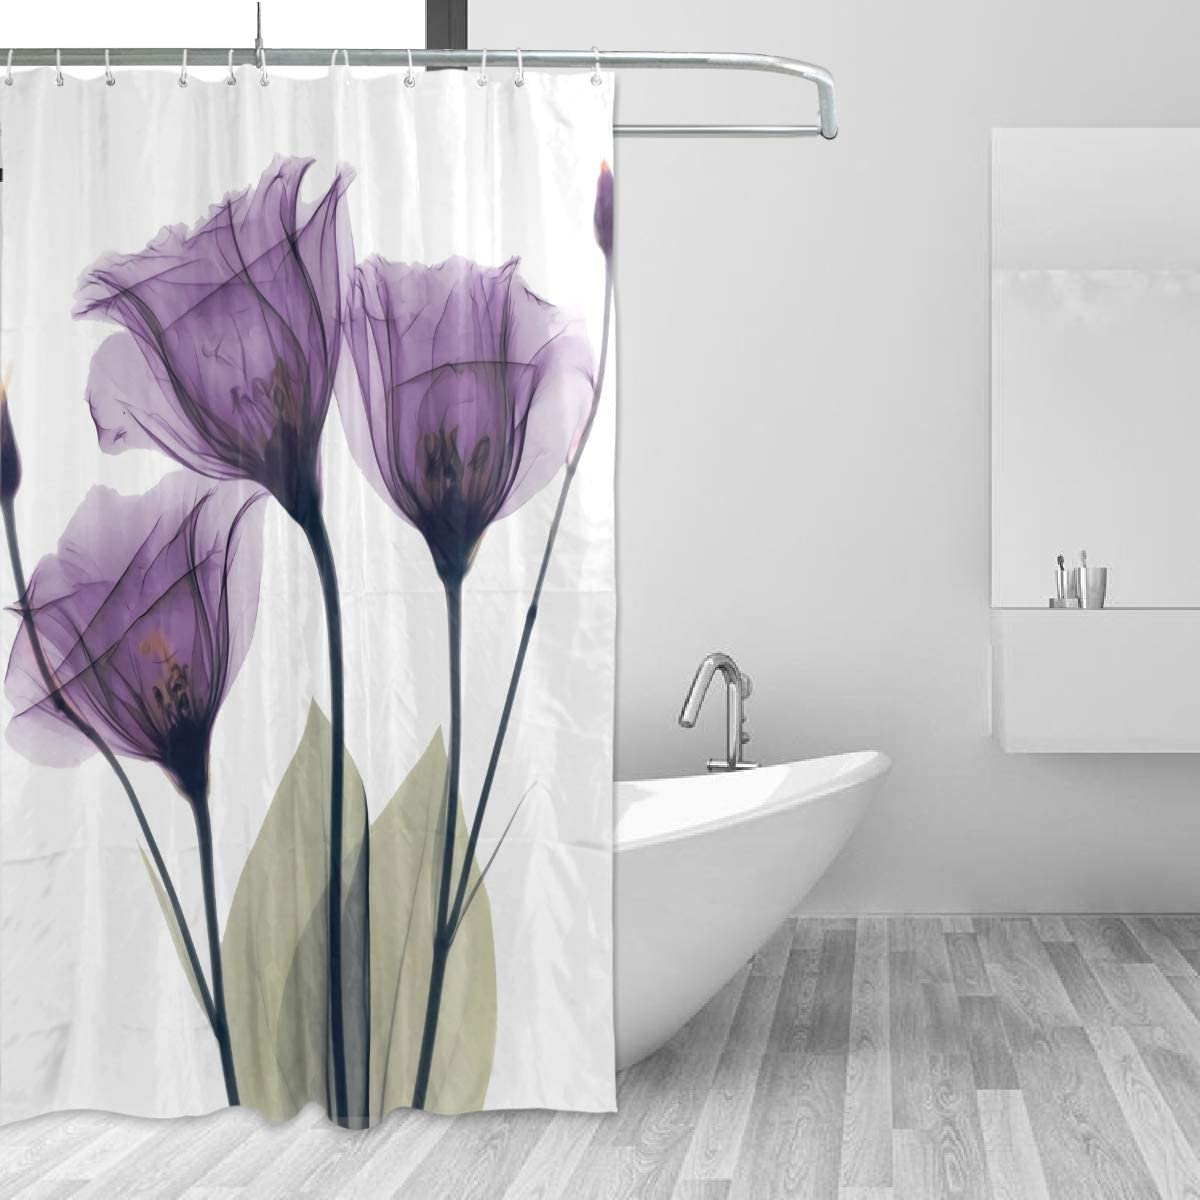 ZOEO Lavender Shower Curtain Purple Hope Flowers Backdrop Bathroom Home Decor Set Fabric Bridal Polyester Washable Waterproof 12 Hooks for Women 60x72 Inch